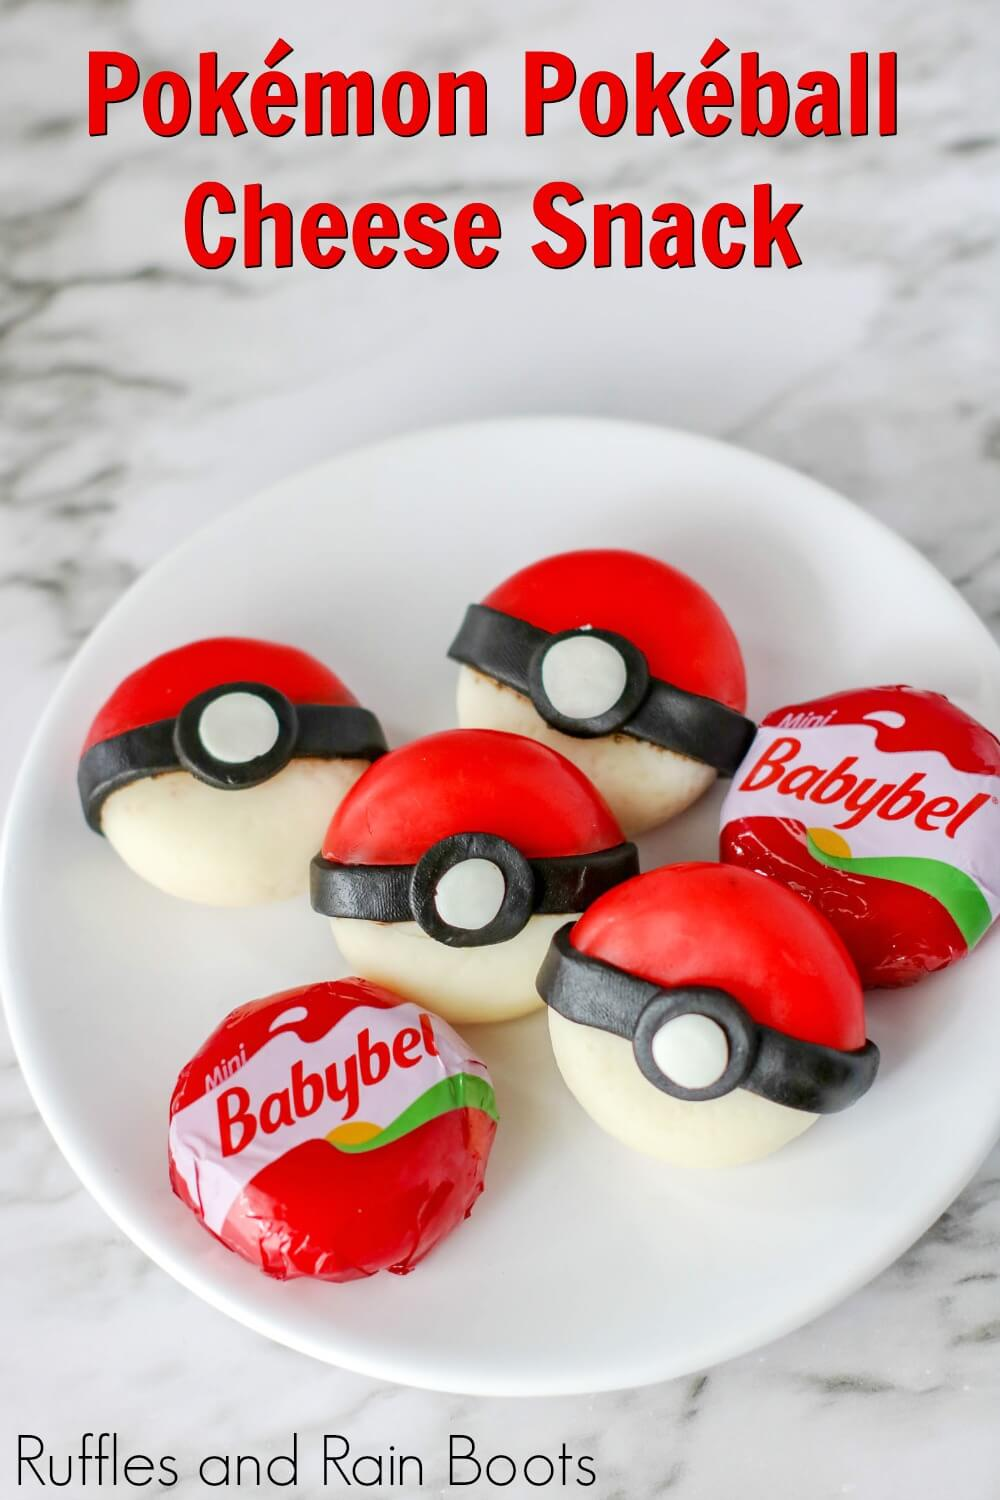 pokeball cheese snack on a plate with text which reads pokemon pokeball cheese snack